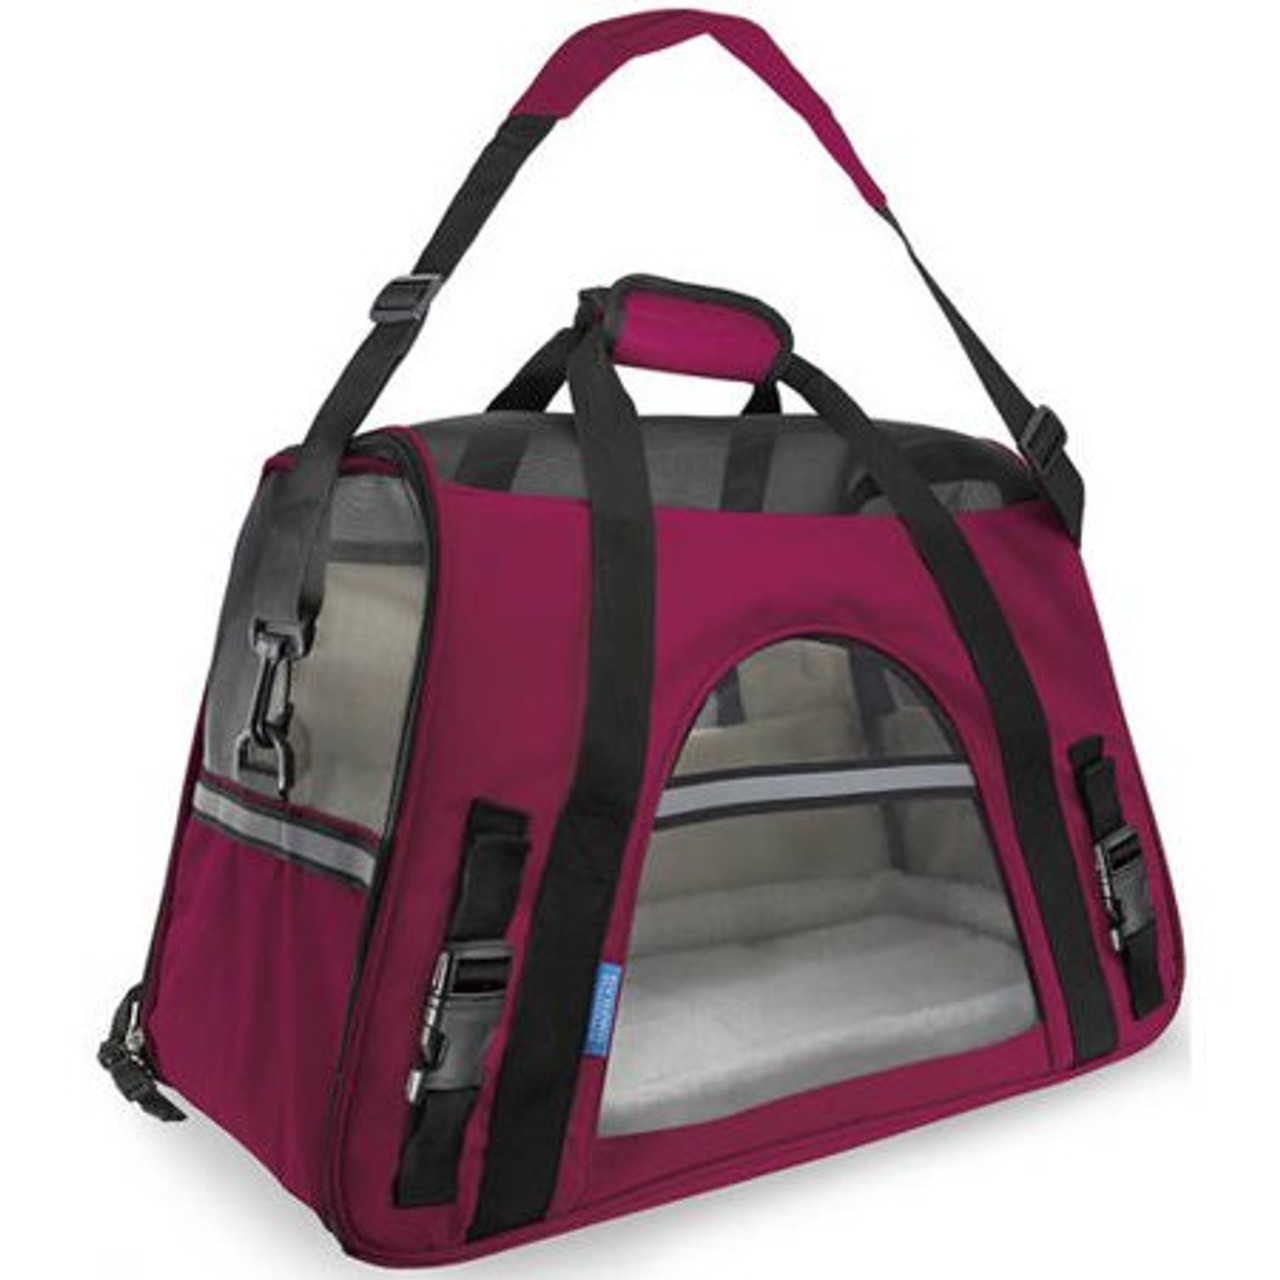 OxGord Soft Sided Cat/Dog Pet Carrier - FAA Airline Approved